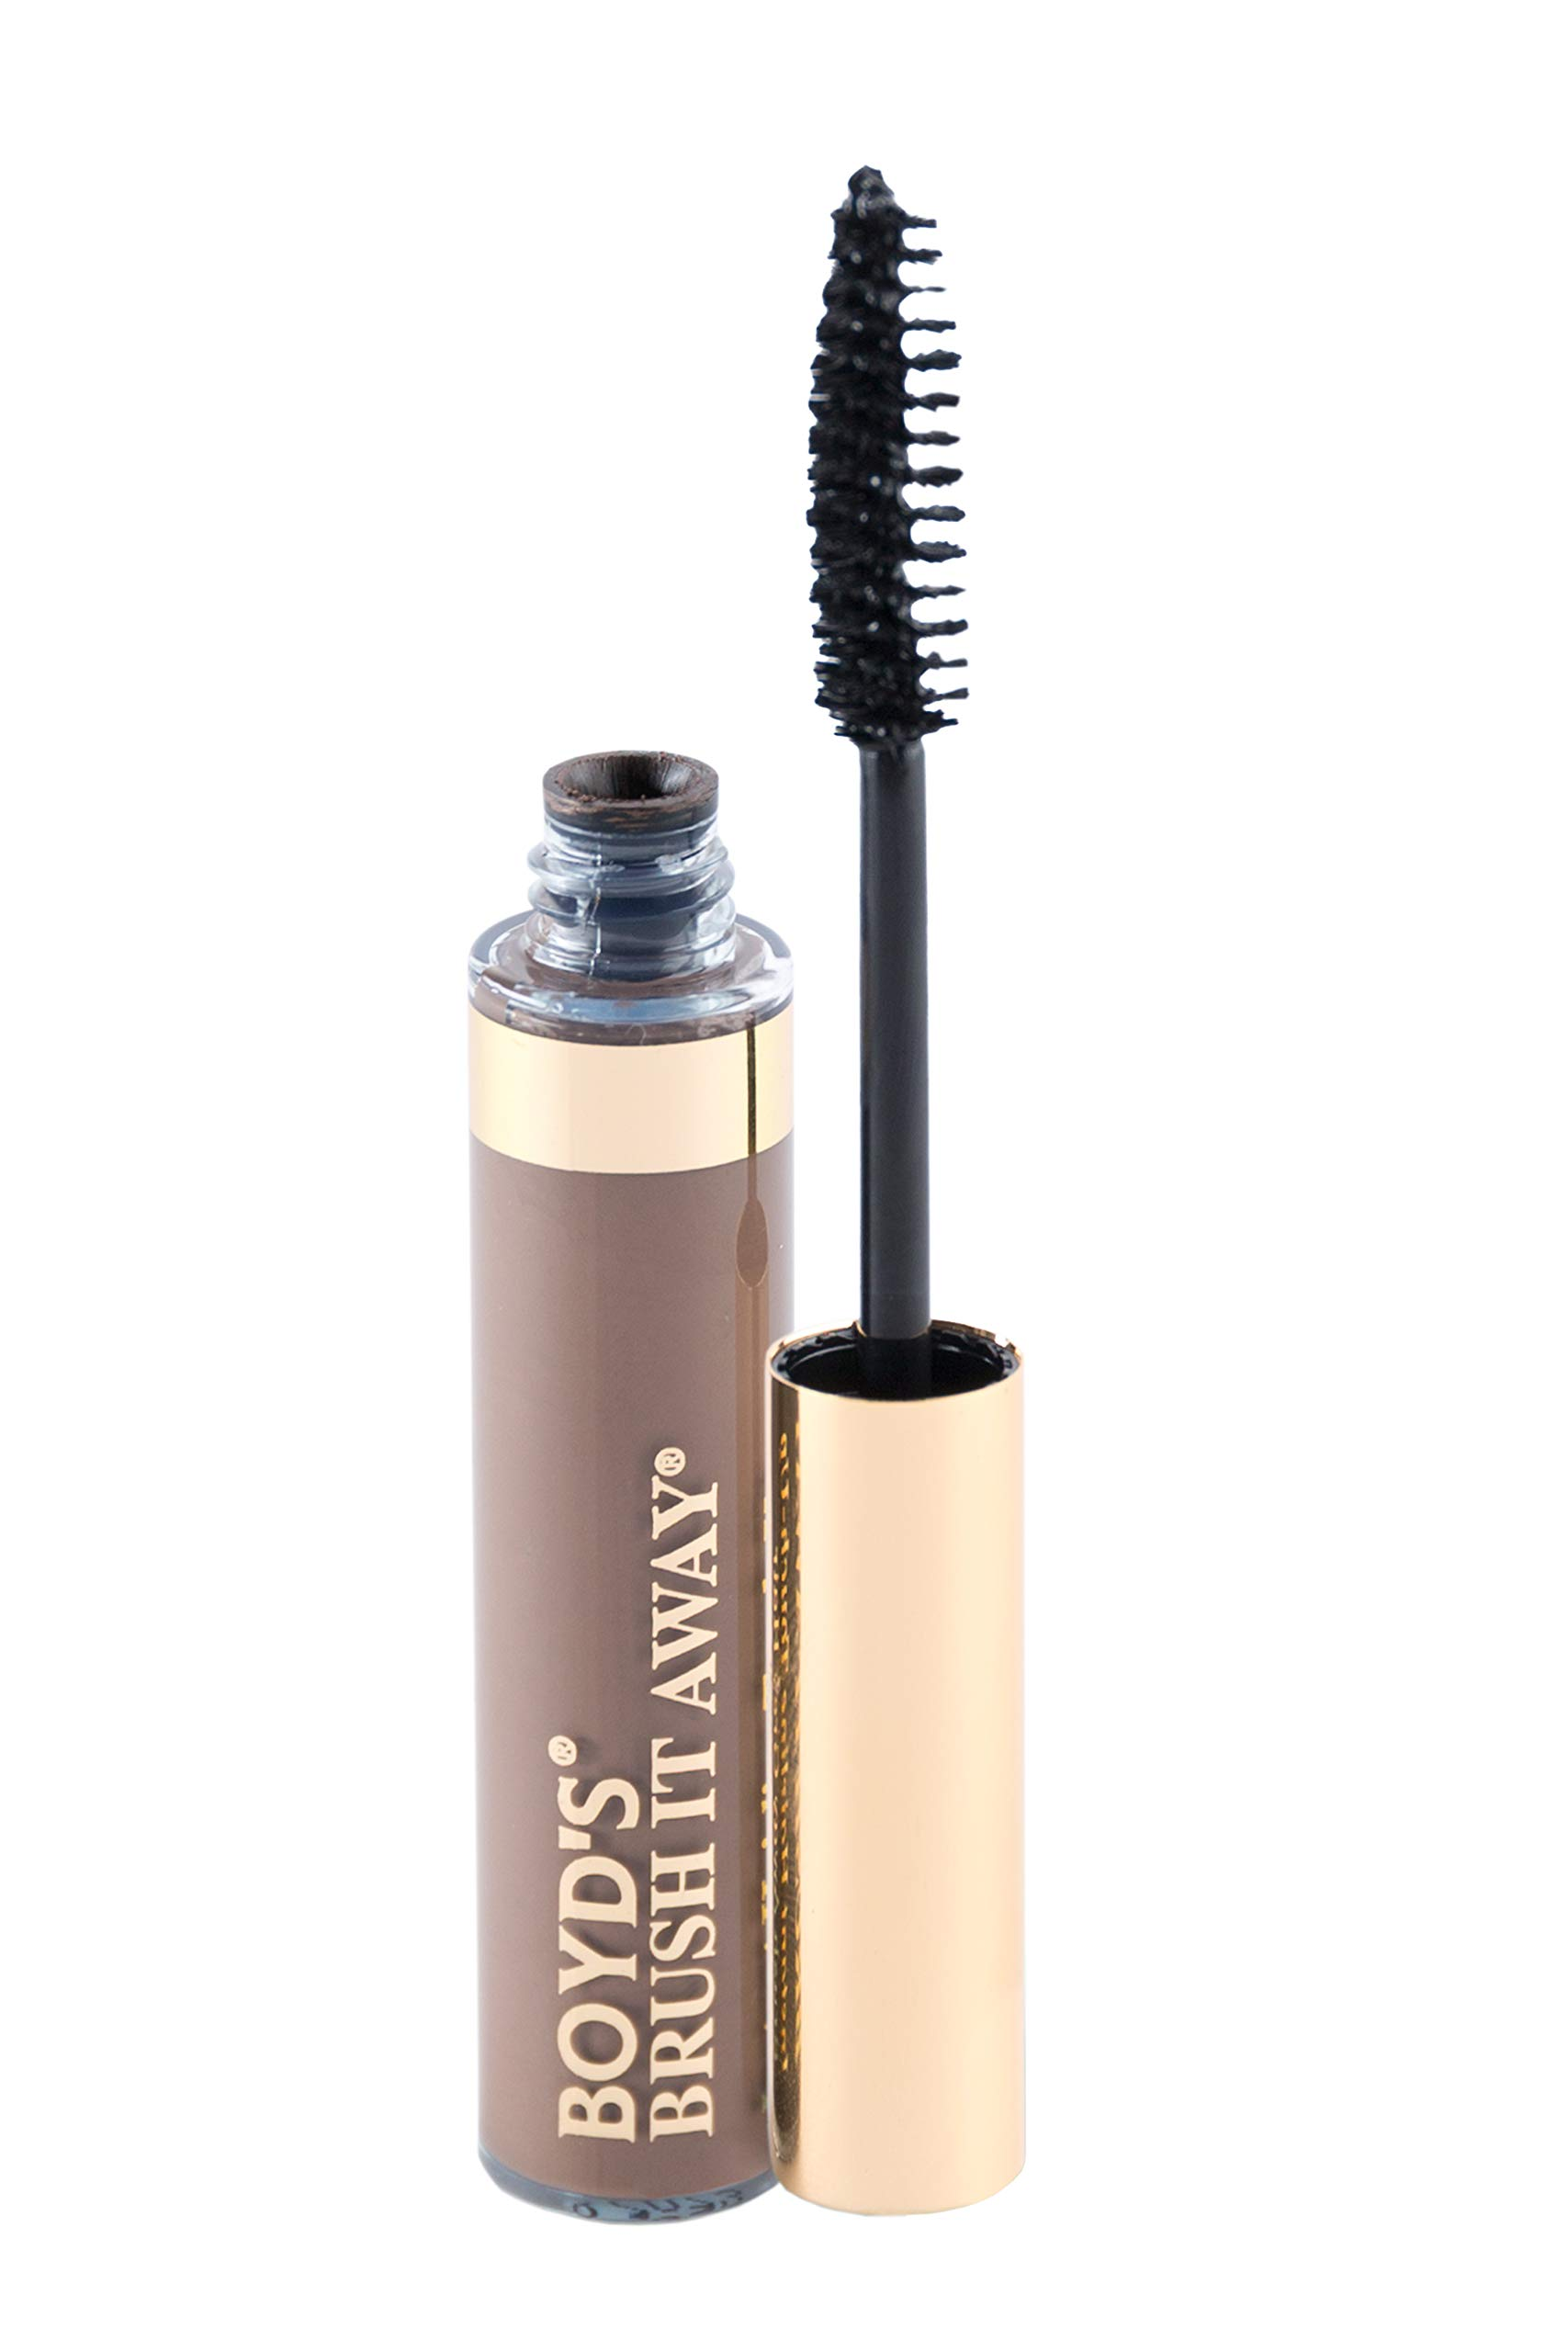 Boyd's Brush It Away Hair Mascara and Root Touch Up (Light Brown) by BOYD'S MADISON AVENUE